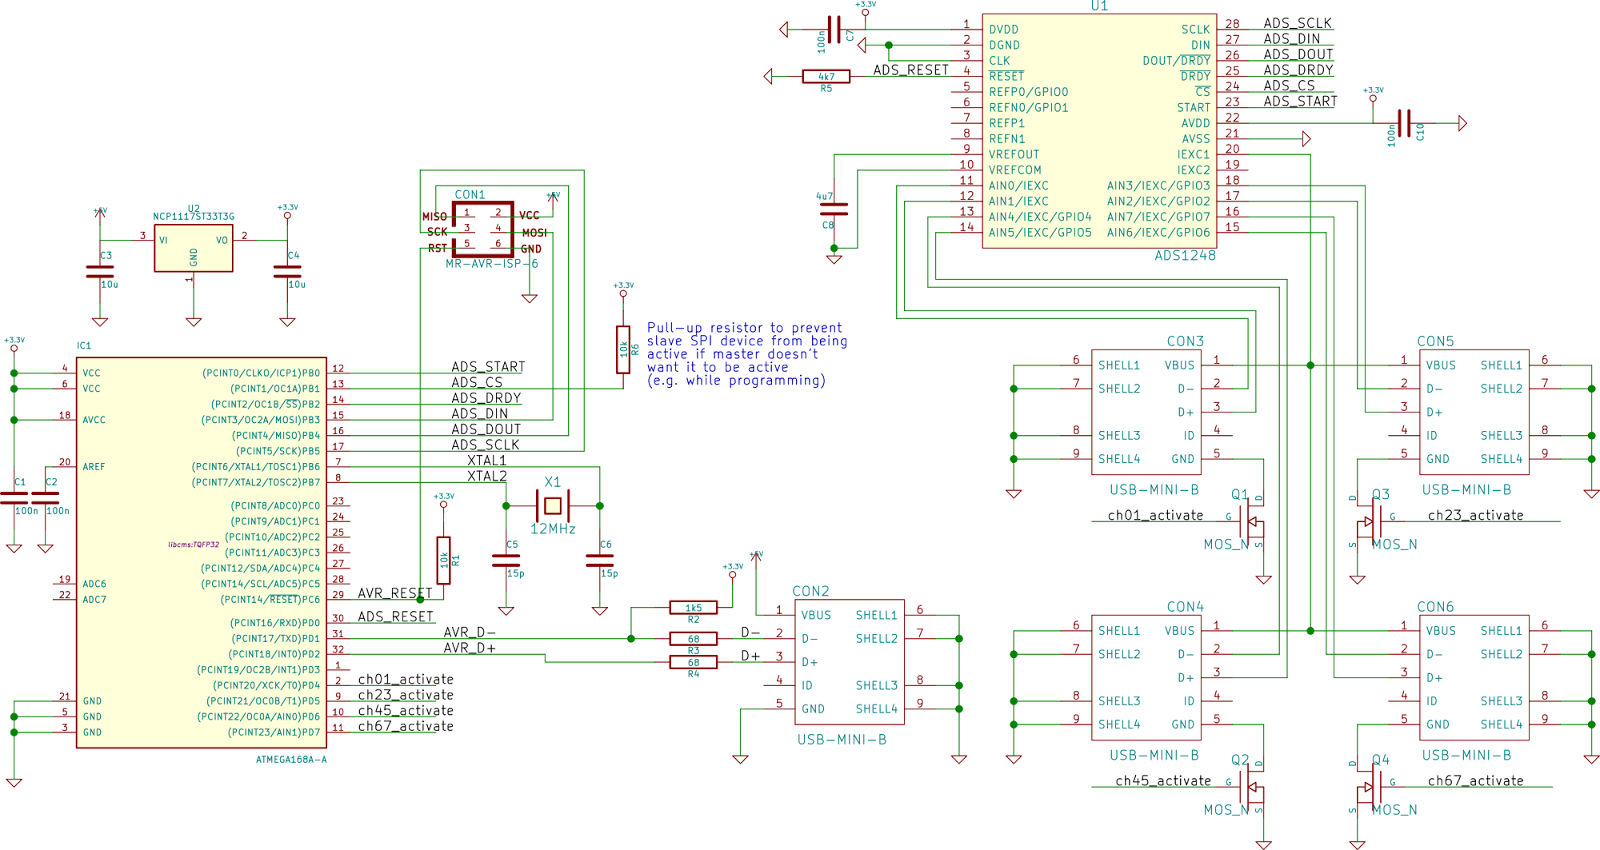 Embedded Systems And Applications In Physics Pt 100 Temperature Logger Usb Mini B Wiring Diagram For The Sensor Cables Ill Abuse Connectors Have 4 Wires Wire Measurements Type Is Robust Cheap Small